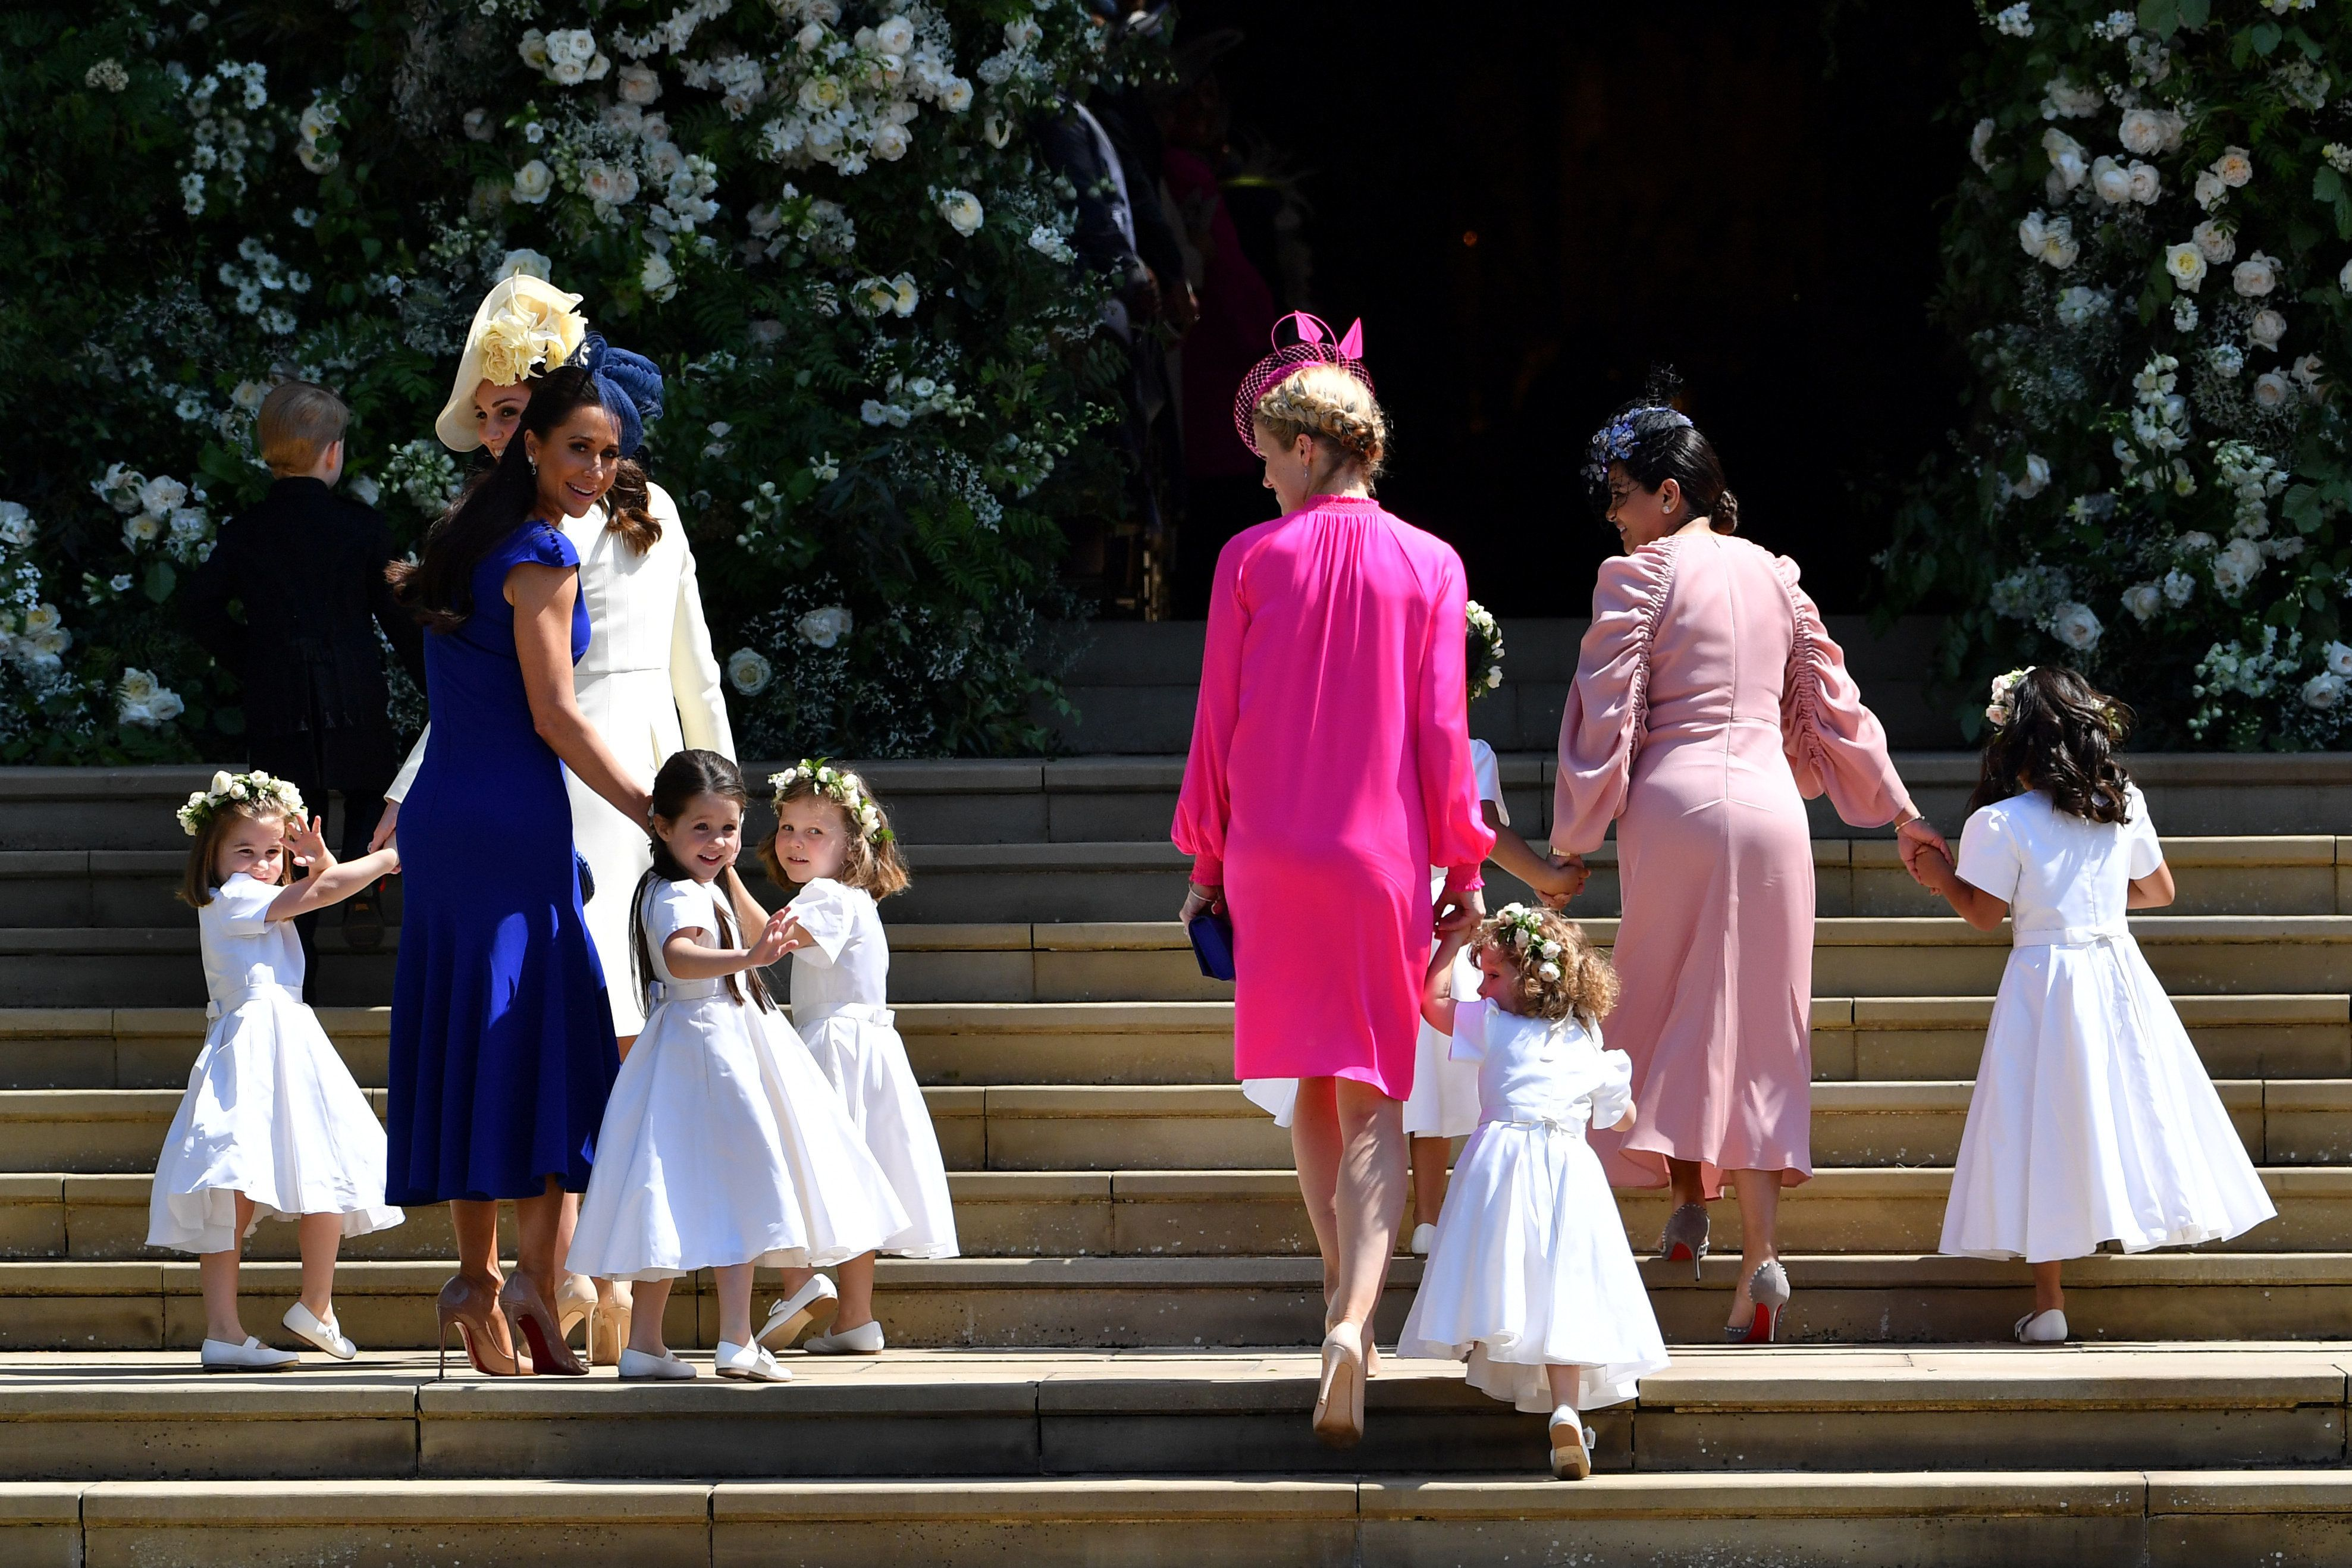 Britain's Catherine, Duchess of Cambridge, and Meghan Markle's friend, Canadian fashion stylist Jessica Mulroney, holds bride